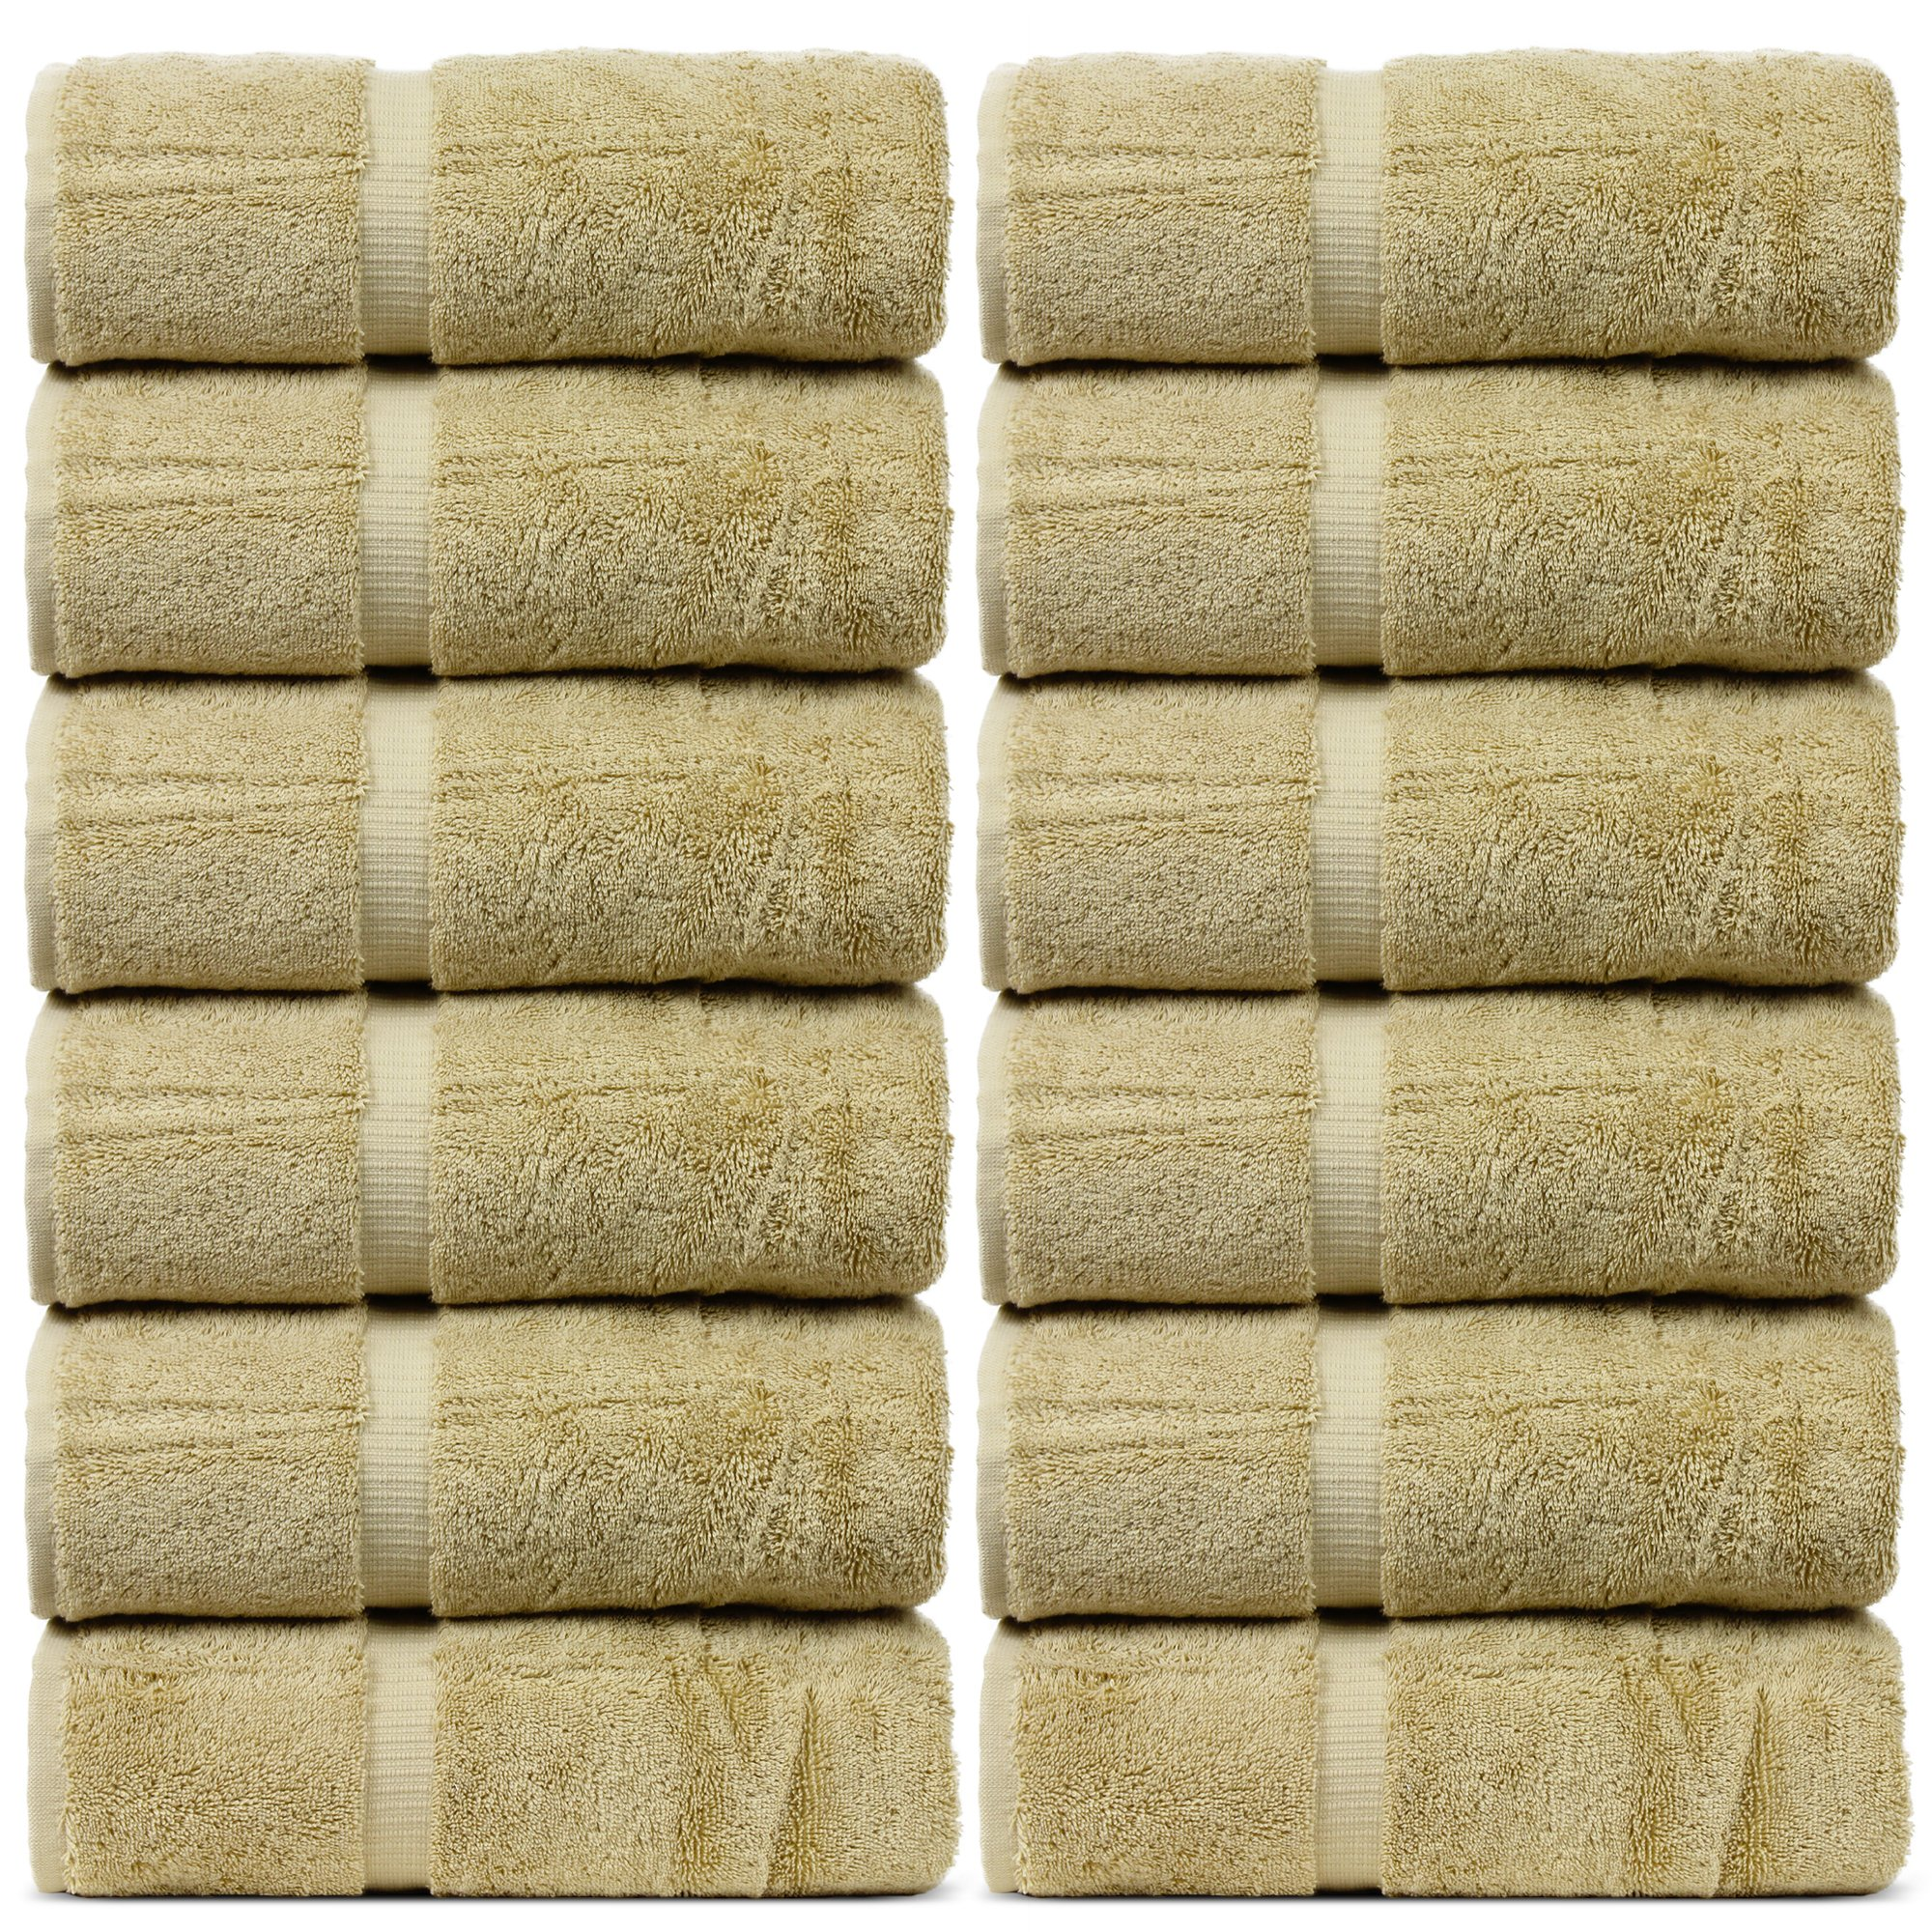 BC BARE COTTON Bare Cotton Luxury Hotel & Spa Towel Turkish Wash Cloths Dobby Border,Driftwood, Set of 12